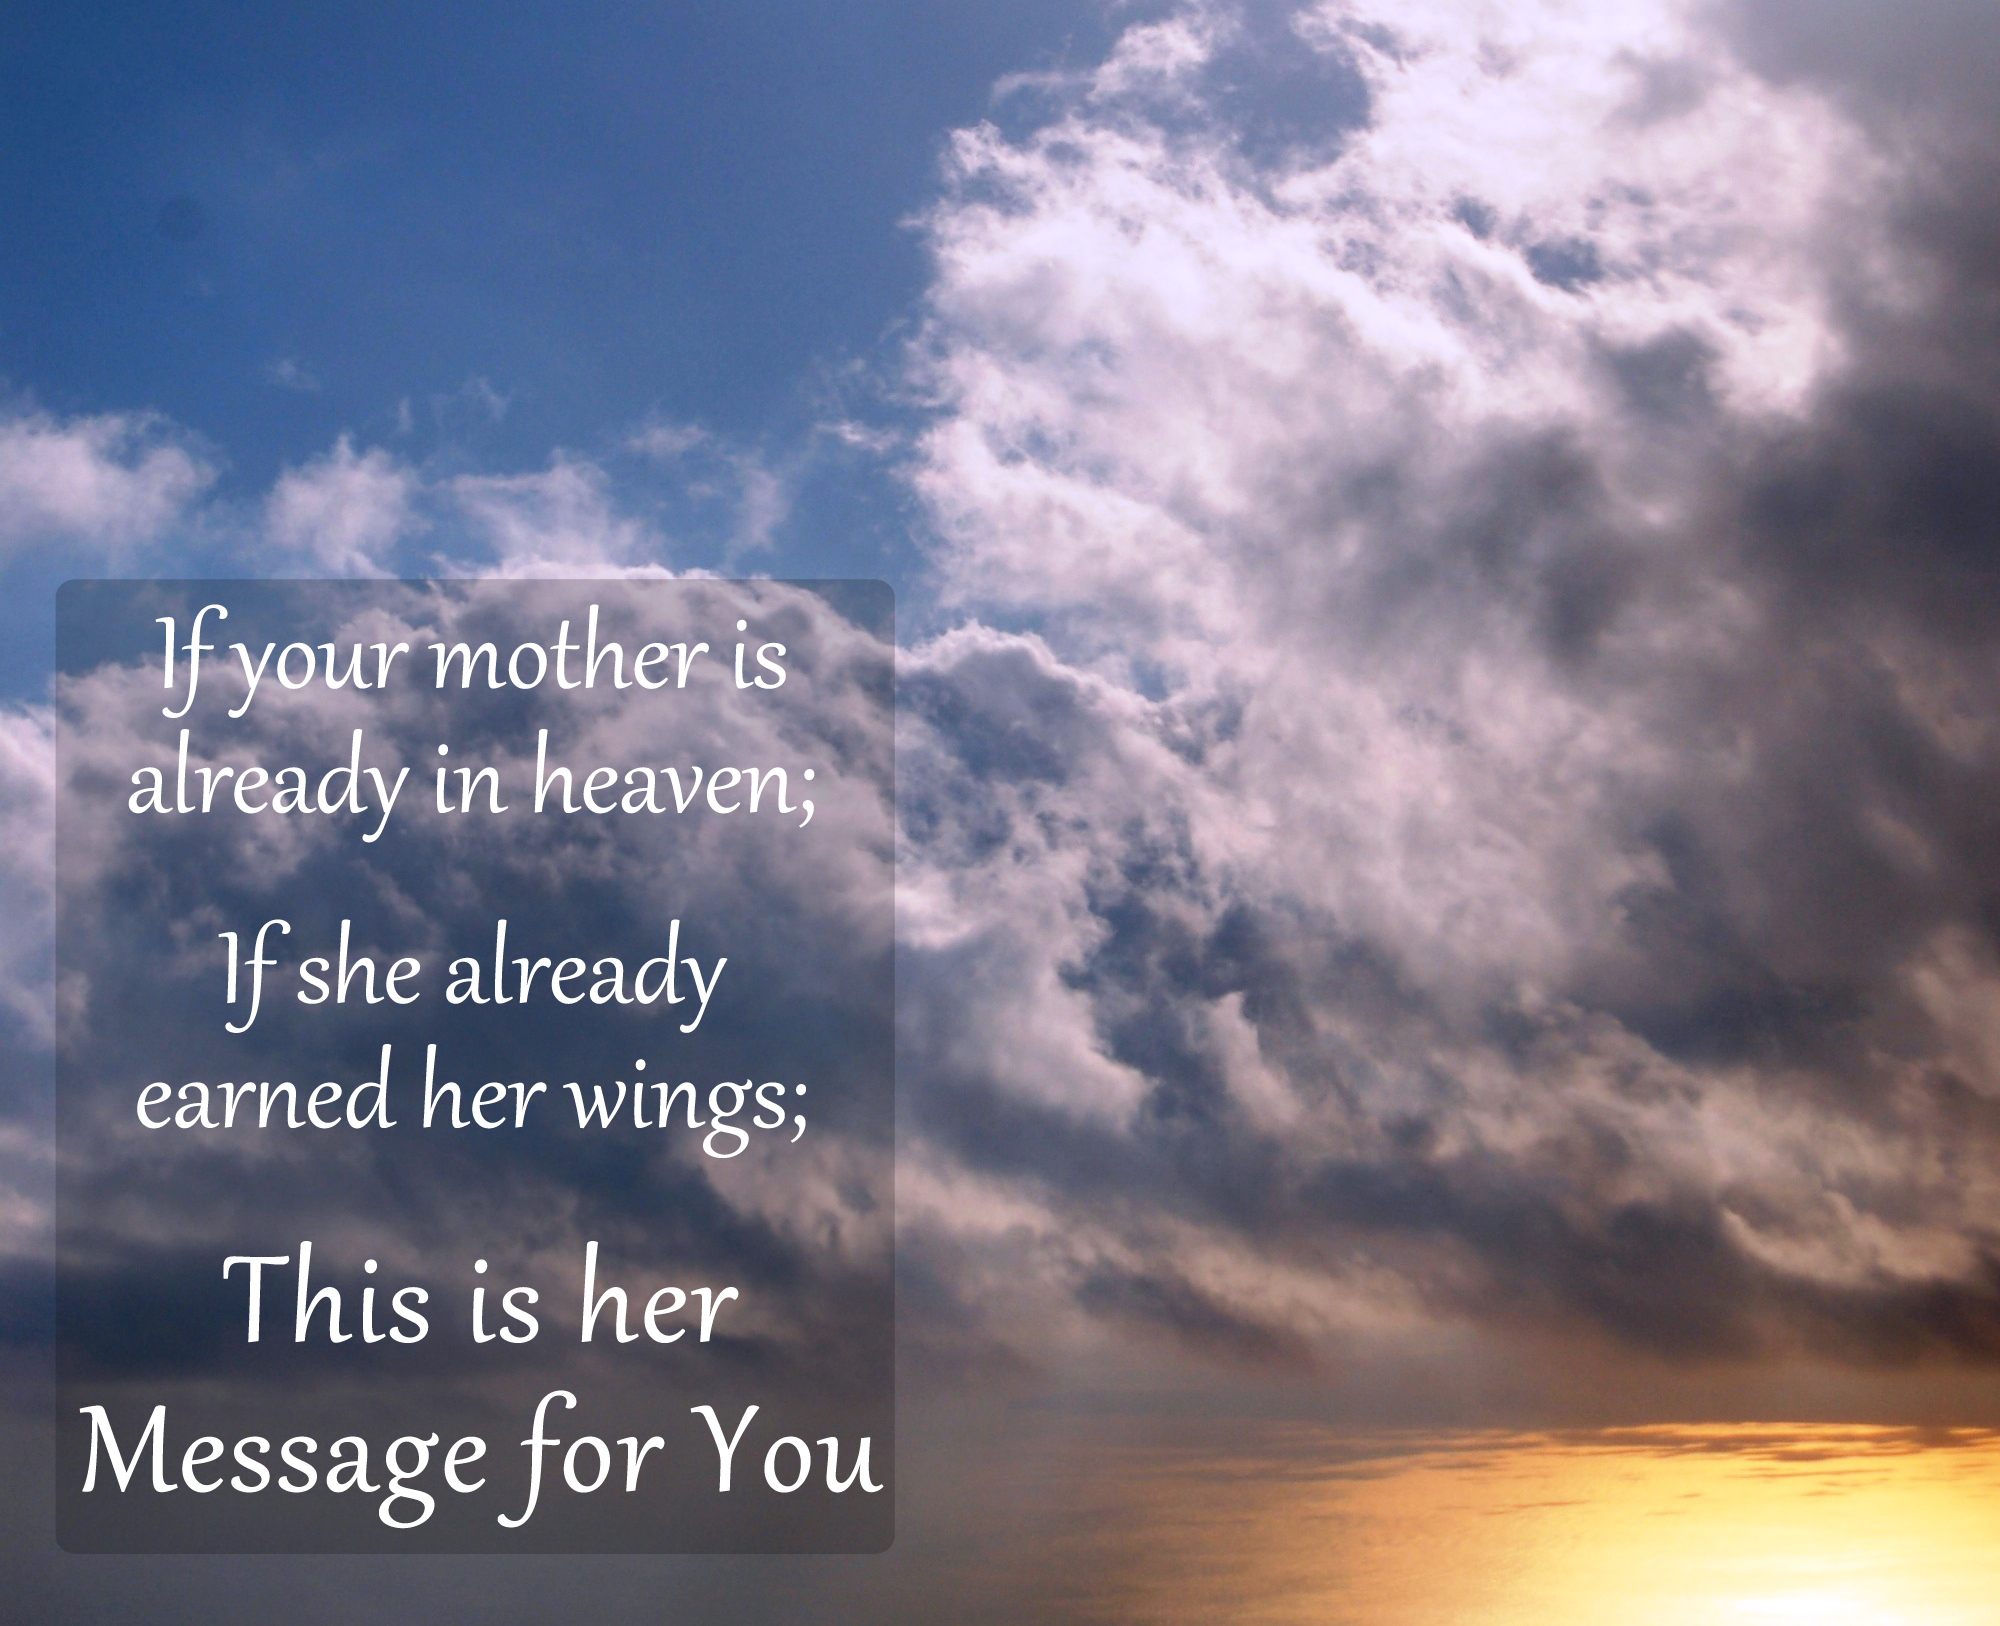 Missing My Mom In Heaven Quotes Alluring John Msimmons Your Mother's Day Message From Your Angel Mom In